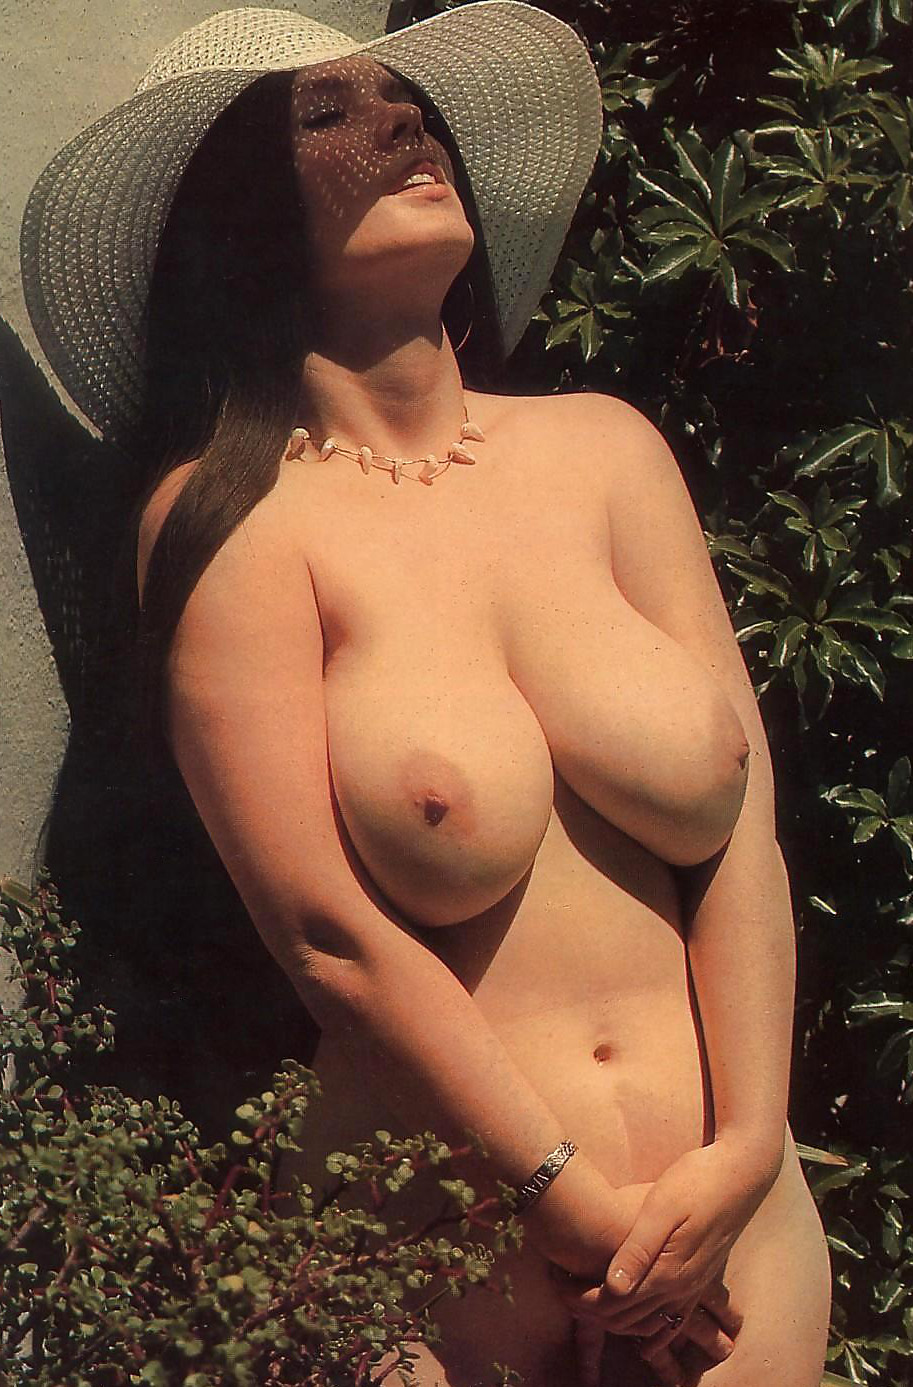 mary-herron-busty-girls-1979